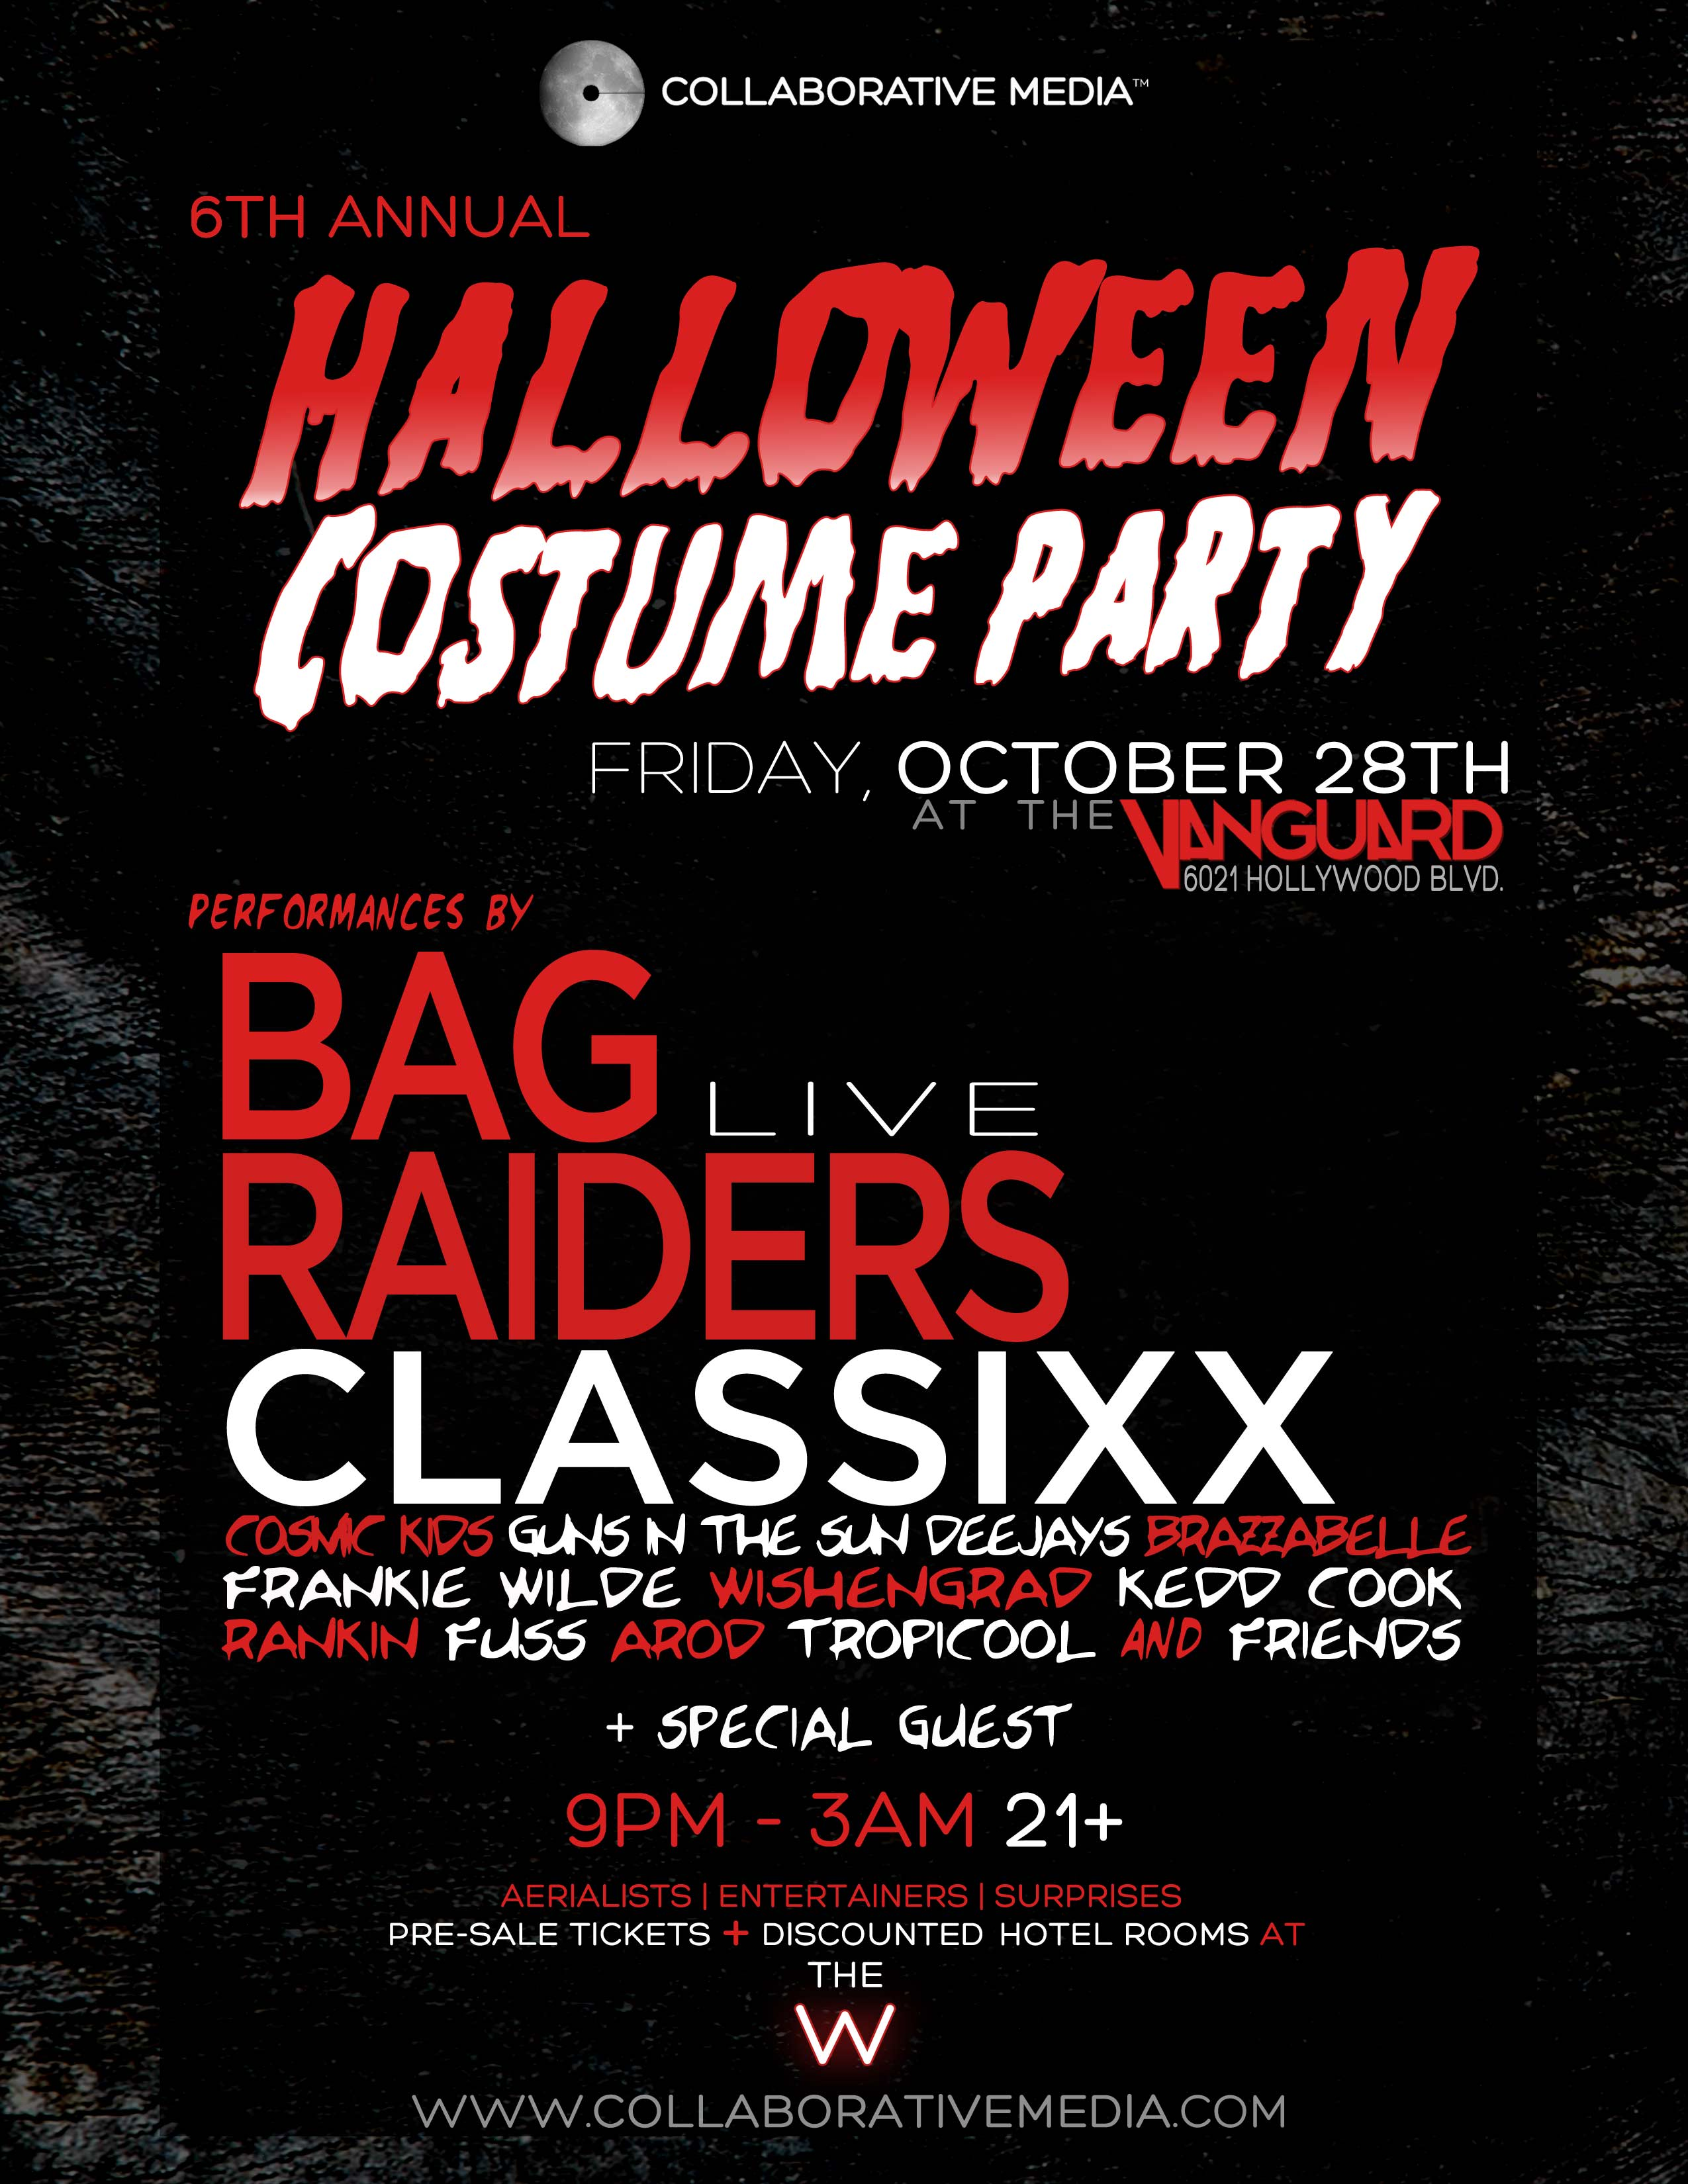 Collaborative Media 6th Annual Halloween feat Bag Raiders, Classixx, Cosmic Kids & friends 10.28.11